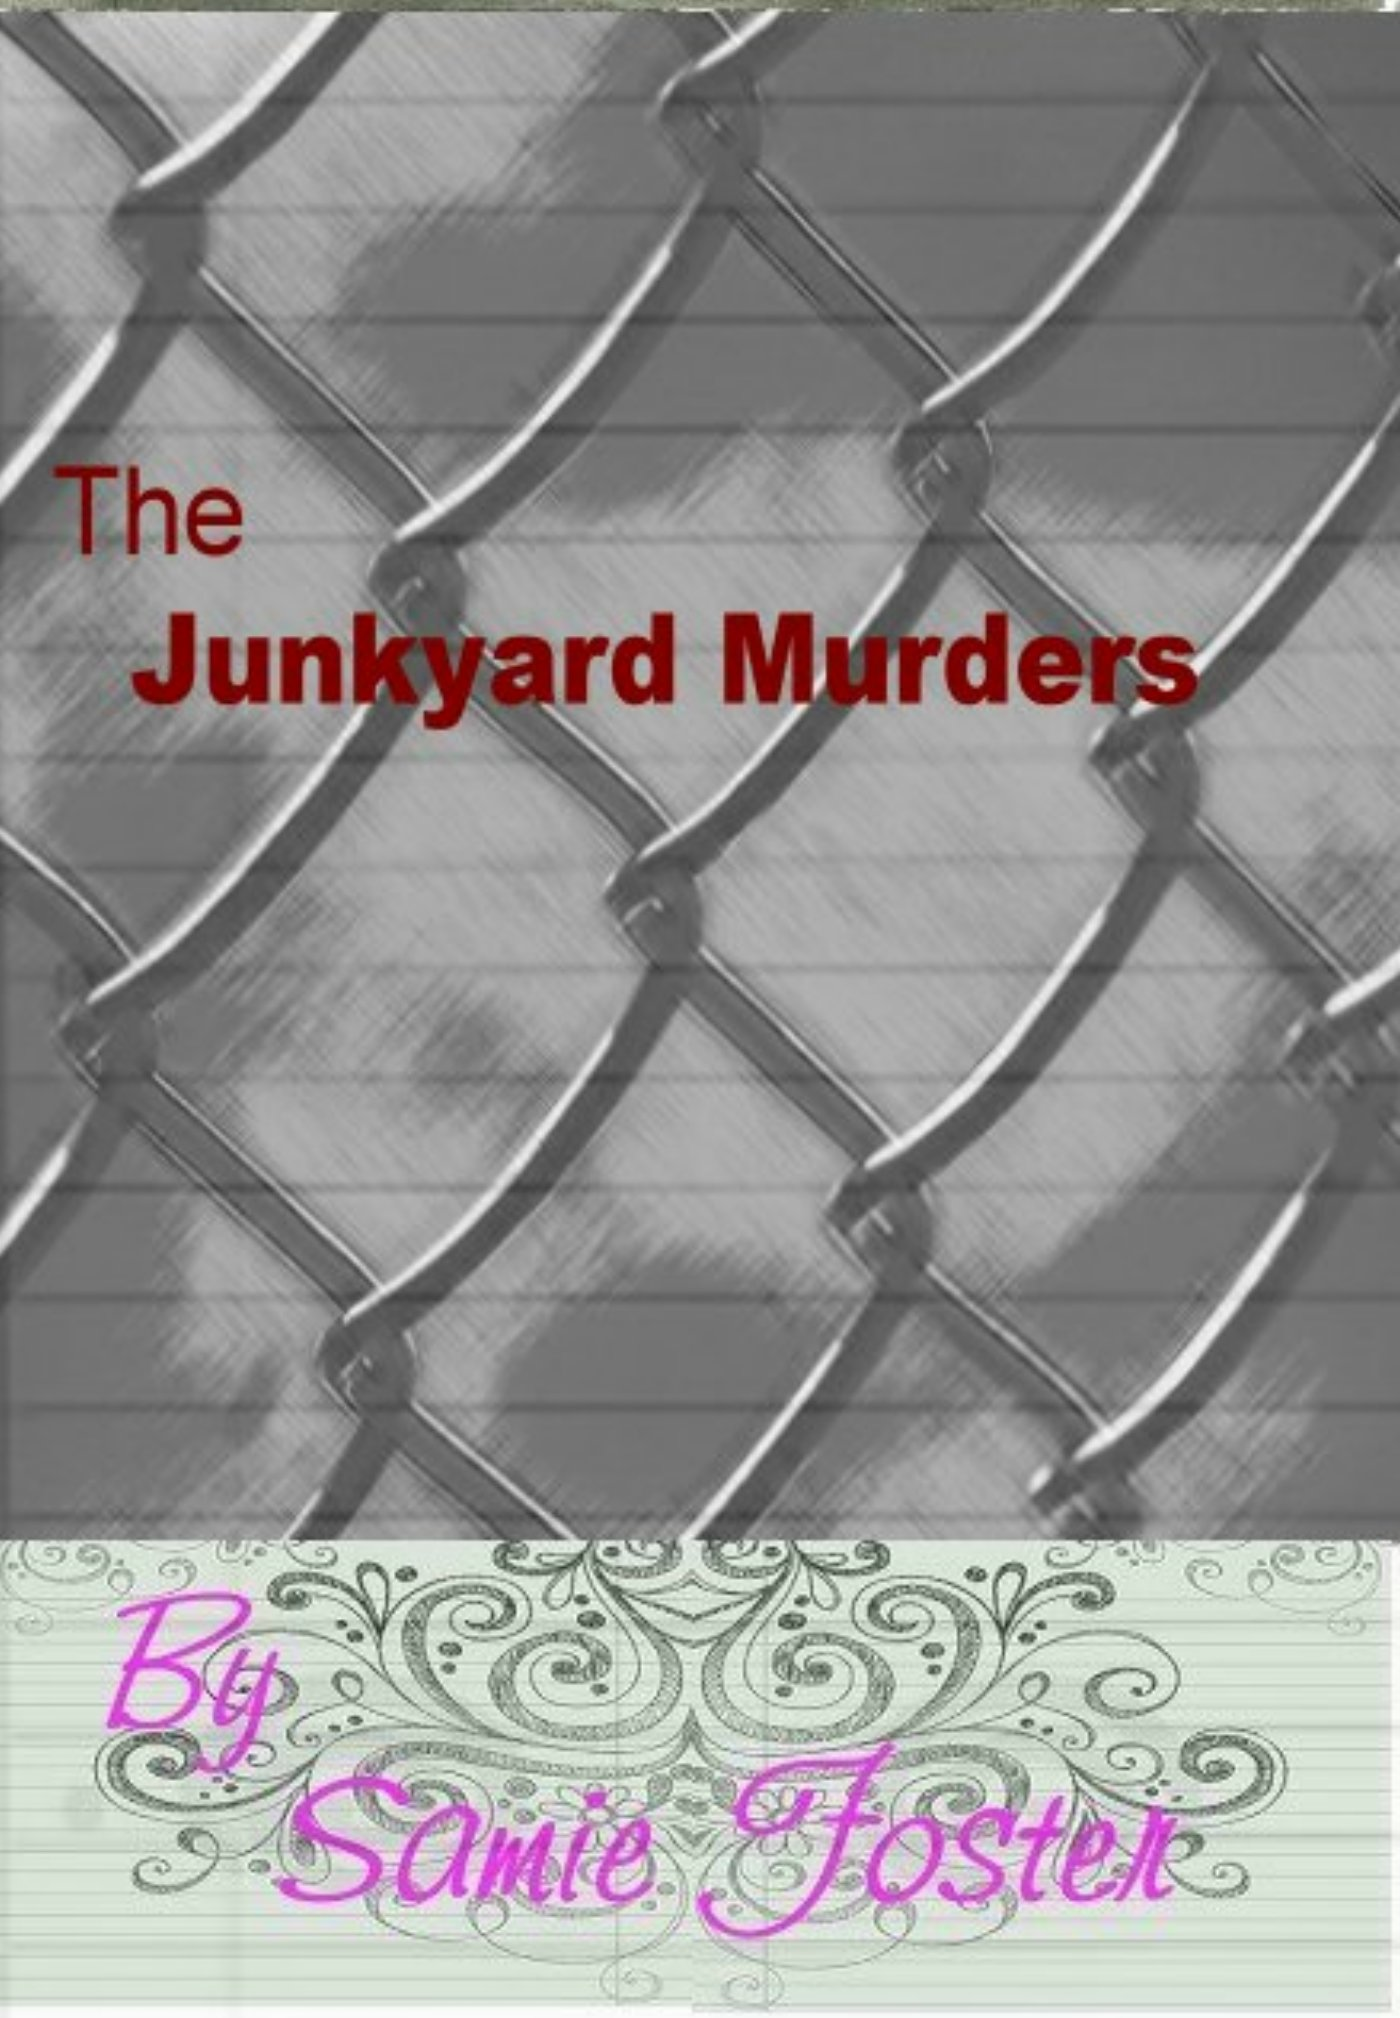 The Junkyard Murders